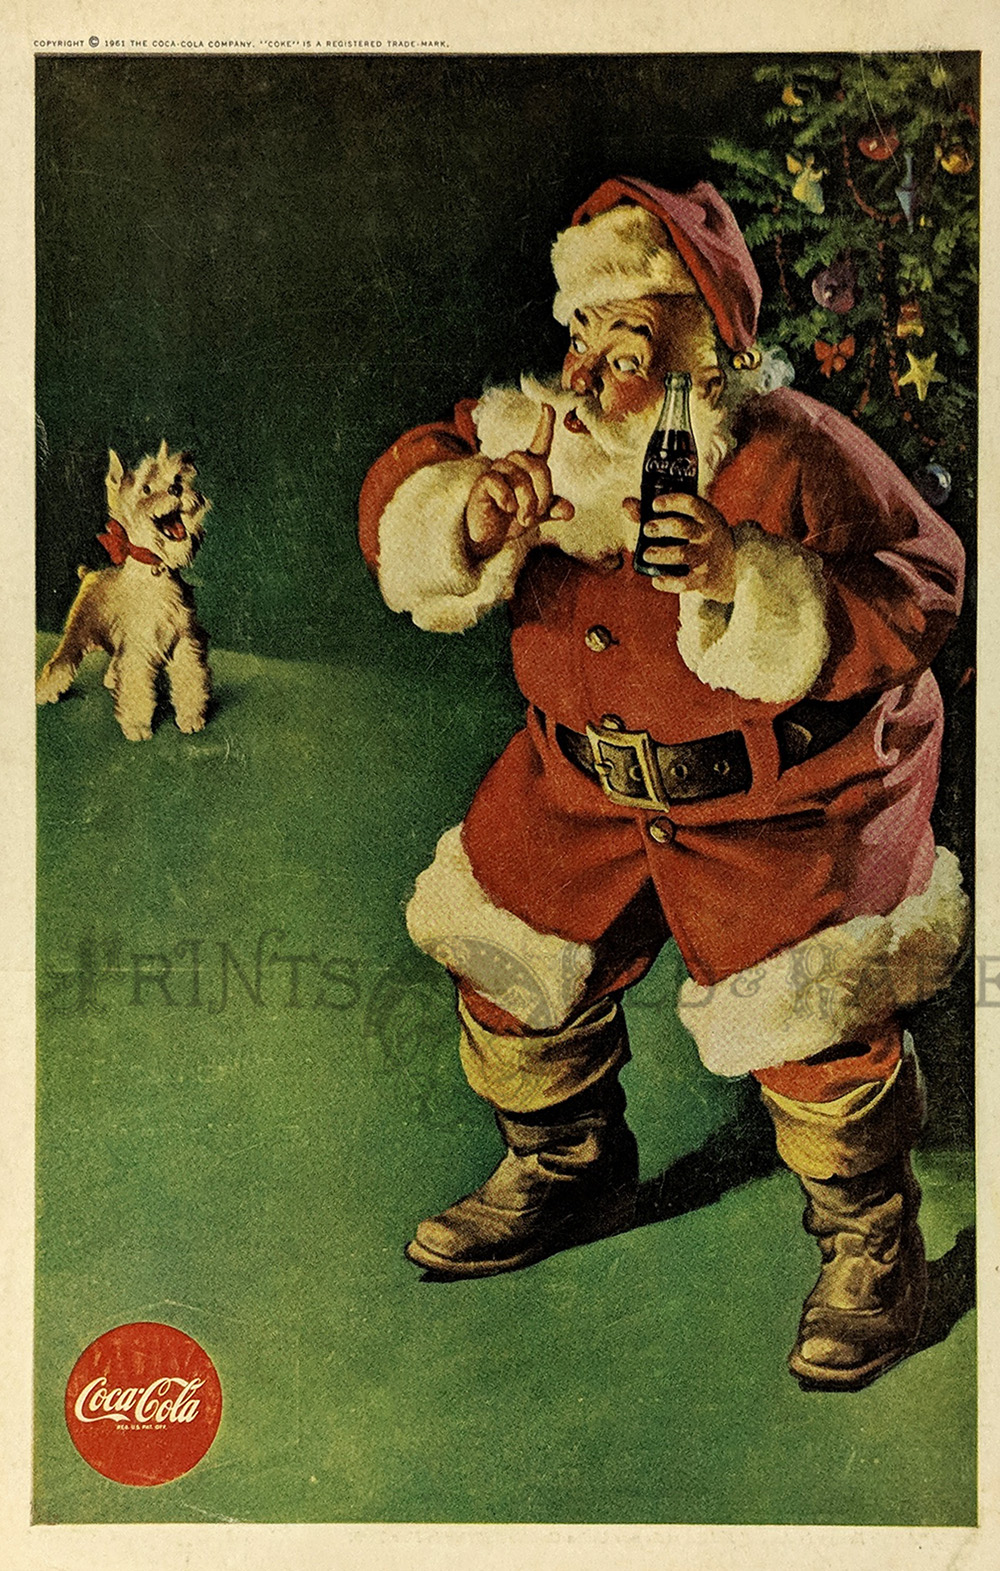 1961 Coca Cola Advertisement Featuring Santa Claus Whispering To A Barking Dog As Holds Bottle Of In His Hand